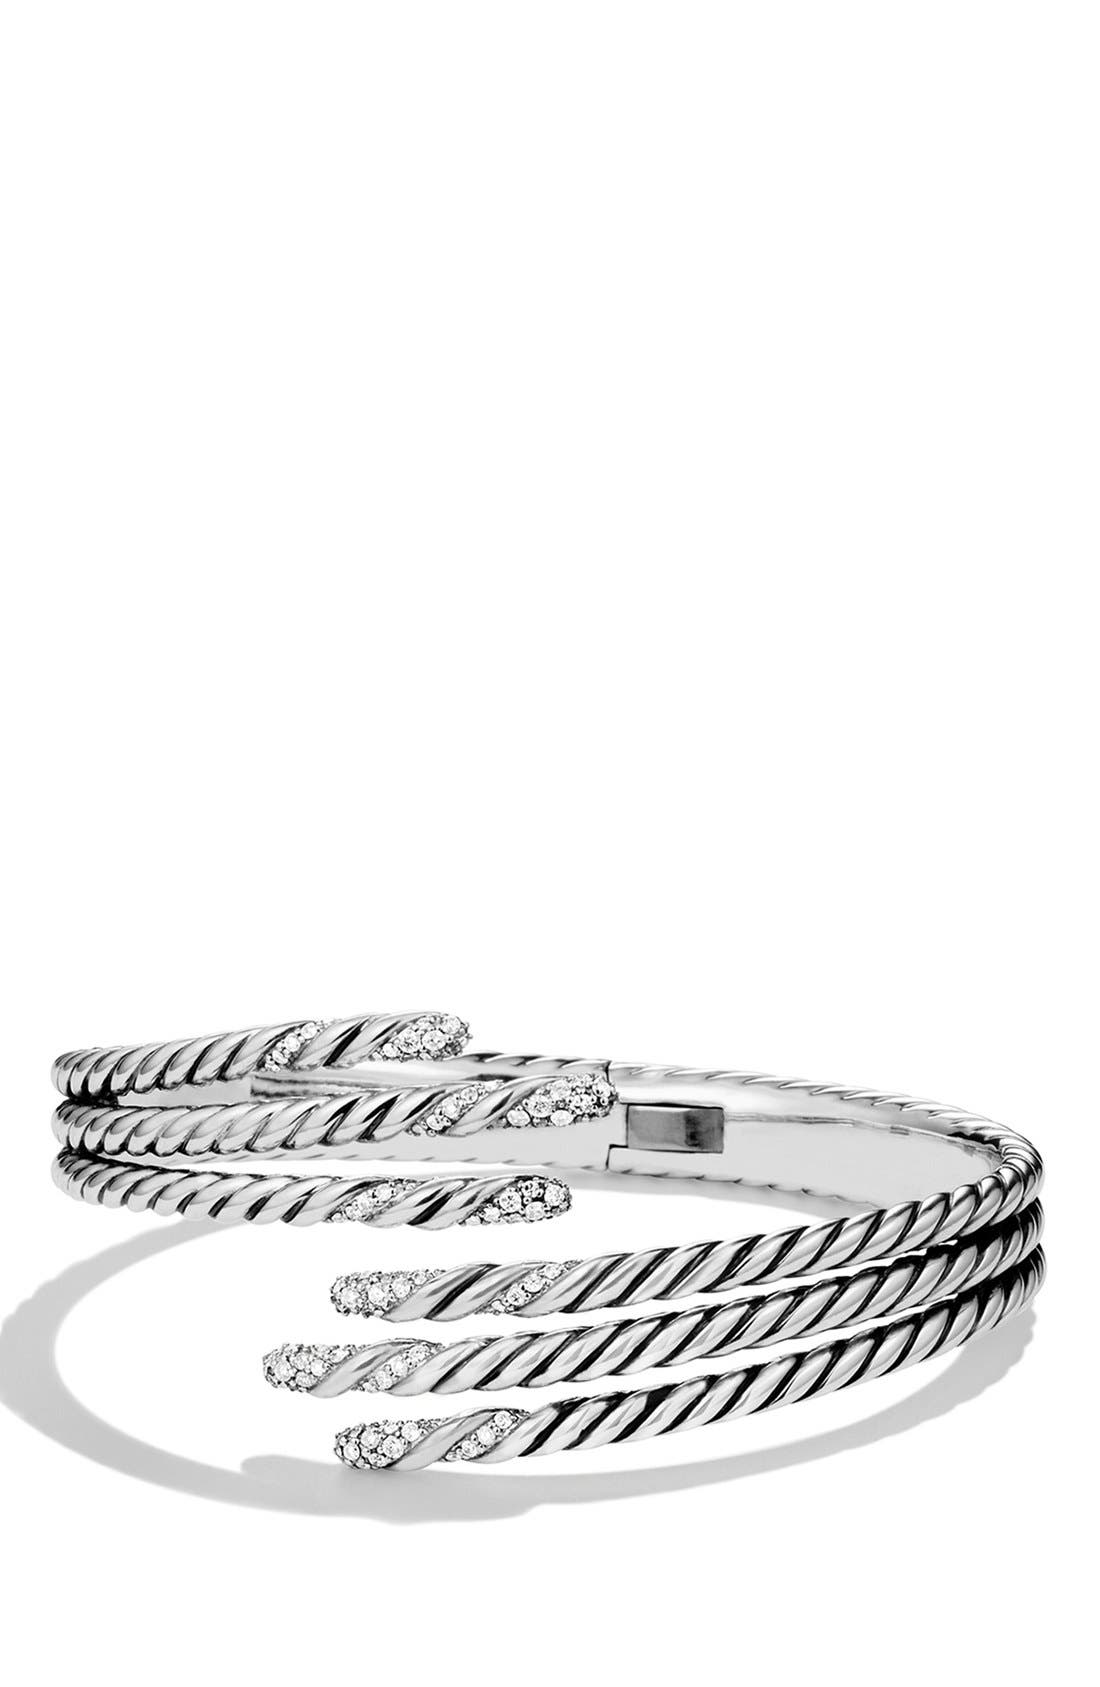 'Willow' Open Three-Row Bracelet with Diamonds,                         Main,                         color, Diamond